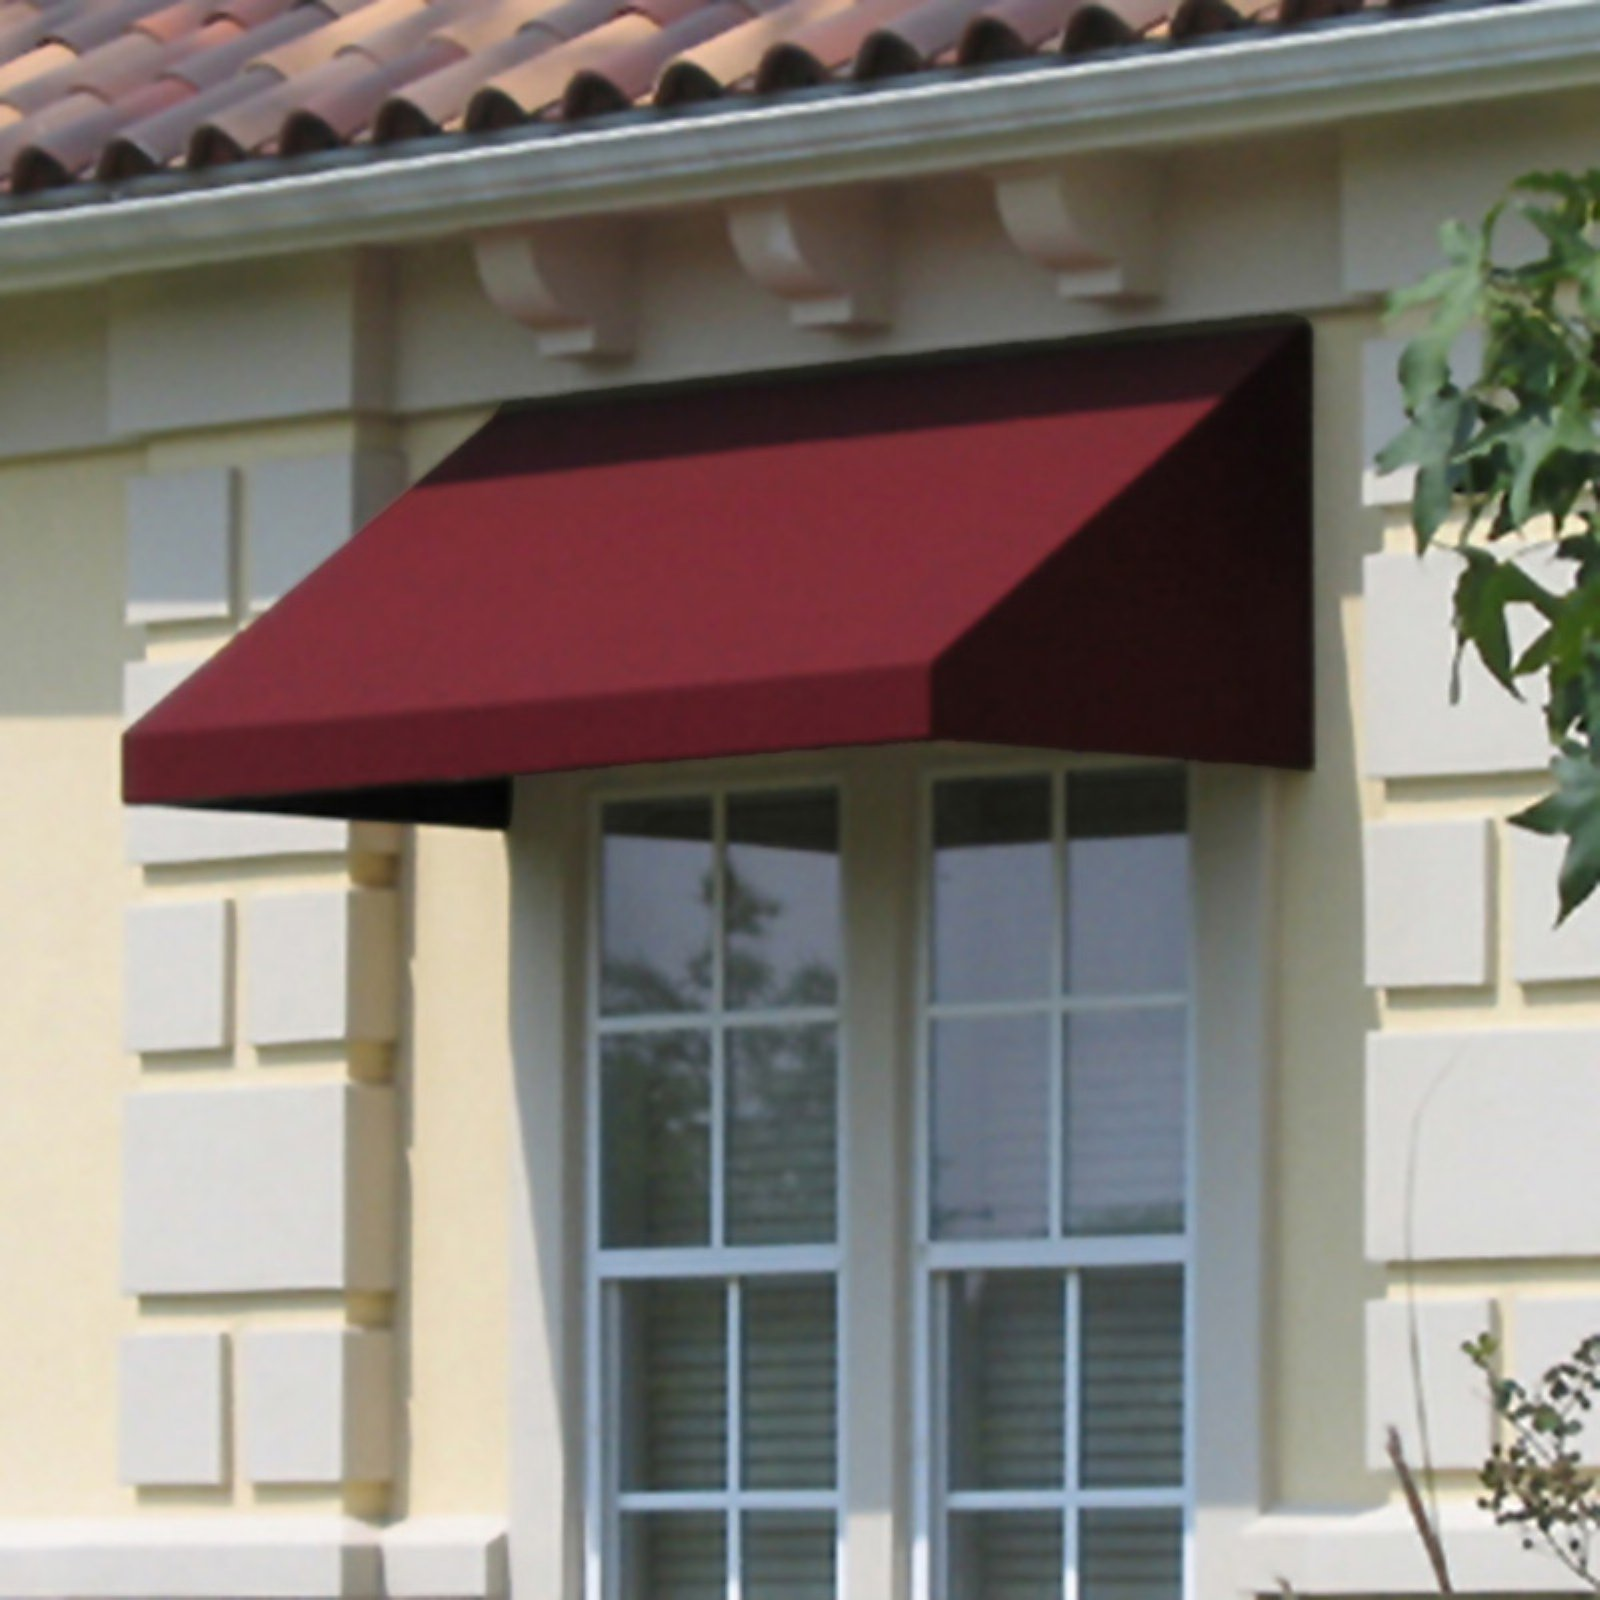 Awntech Beauty-Mark New Yorker 4 ft. Low Eaves Window/Door Awning